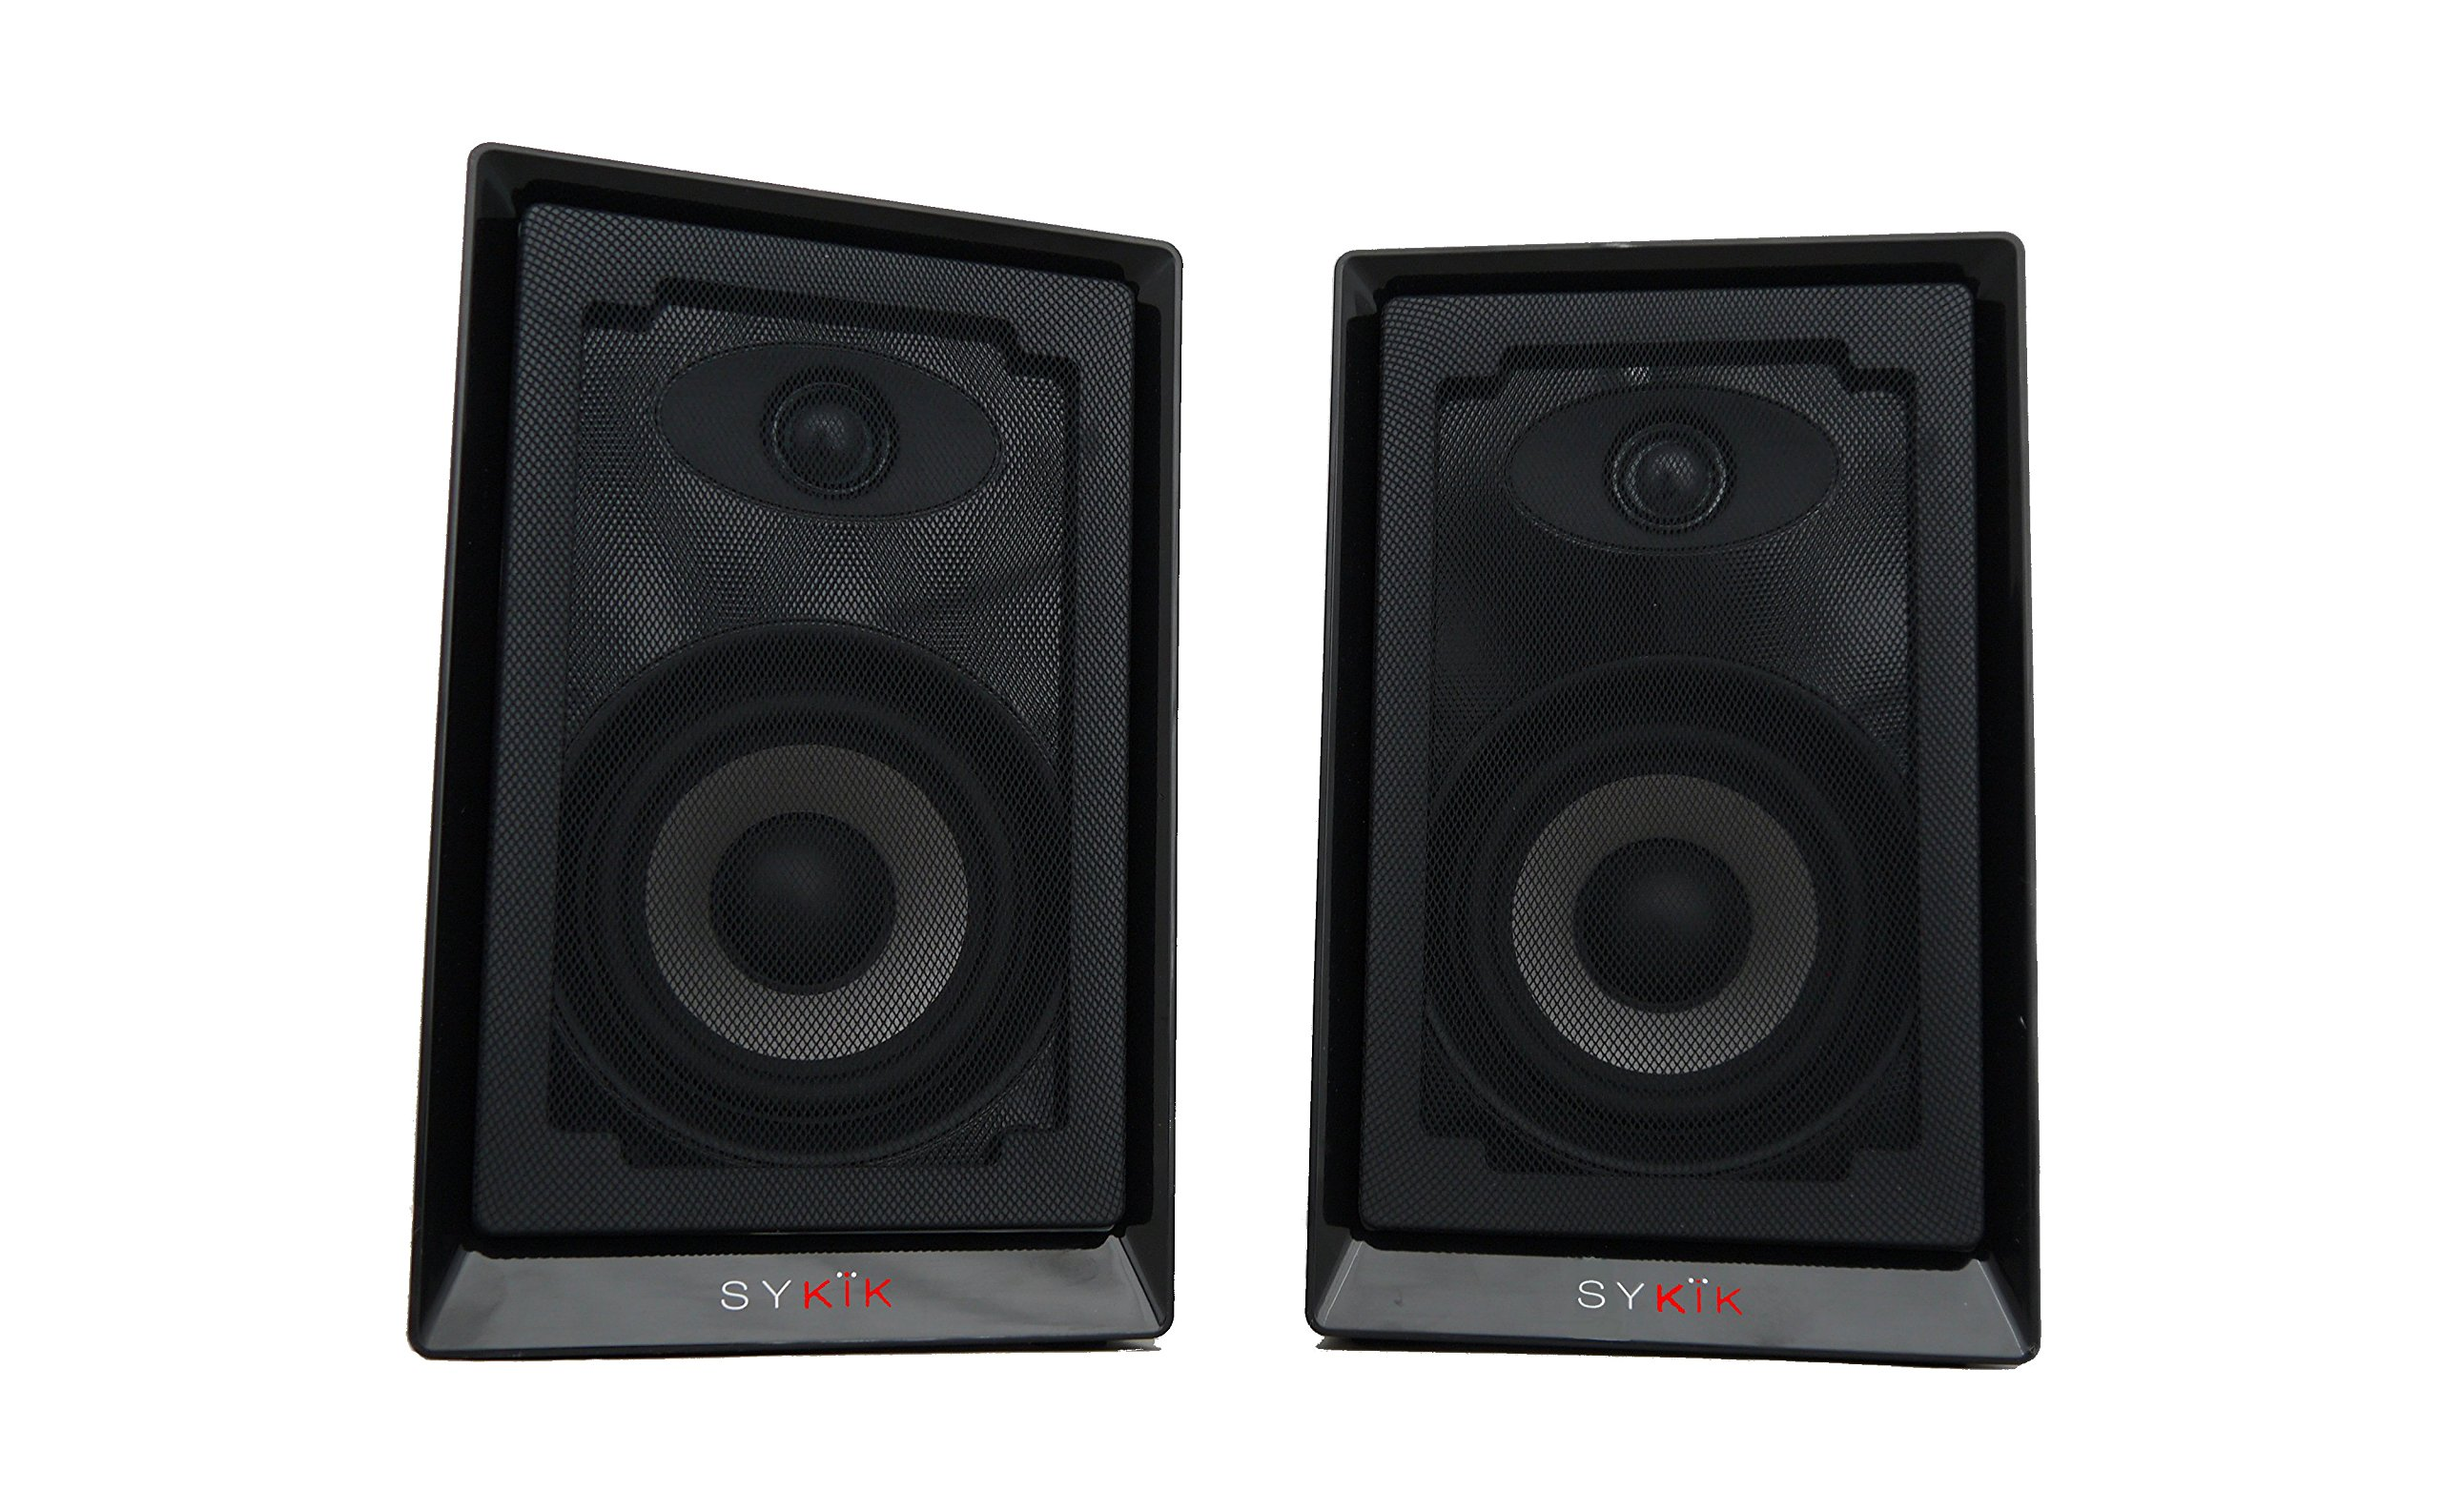 Sykik Pro, SP2551BT Powered Monitor Speakers W/High Definition (HD) Sound and Wireless Bluetooth Connection, Specially Design to Perform with Today's Turntable Systems. (Pair) Sp2551Btbt